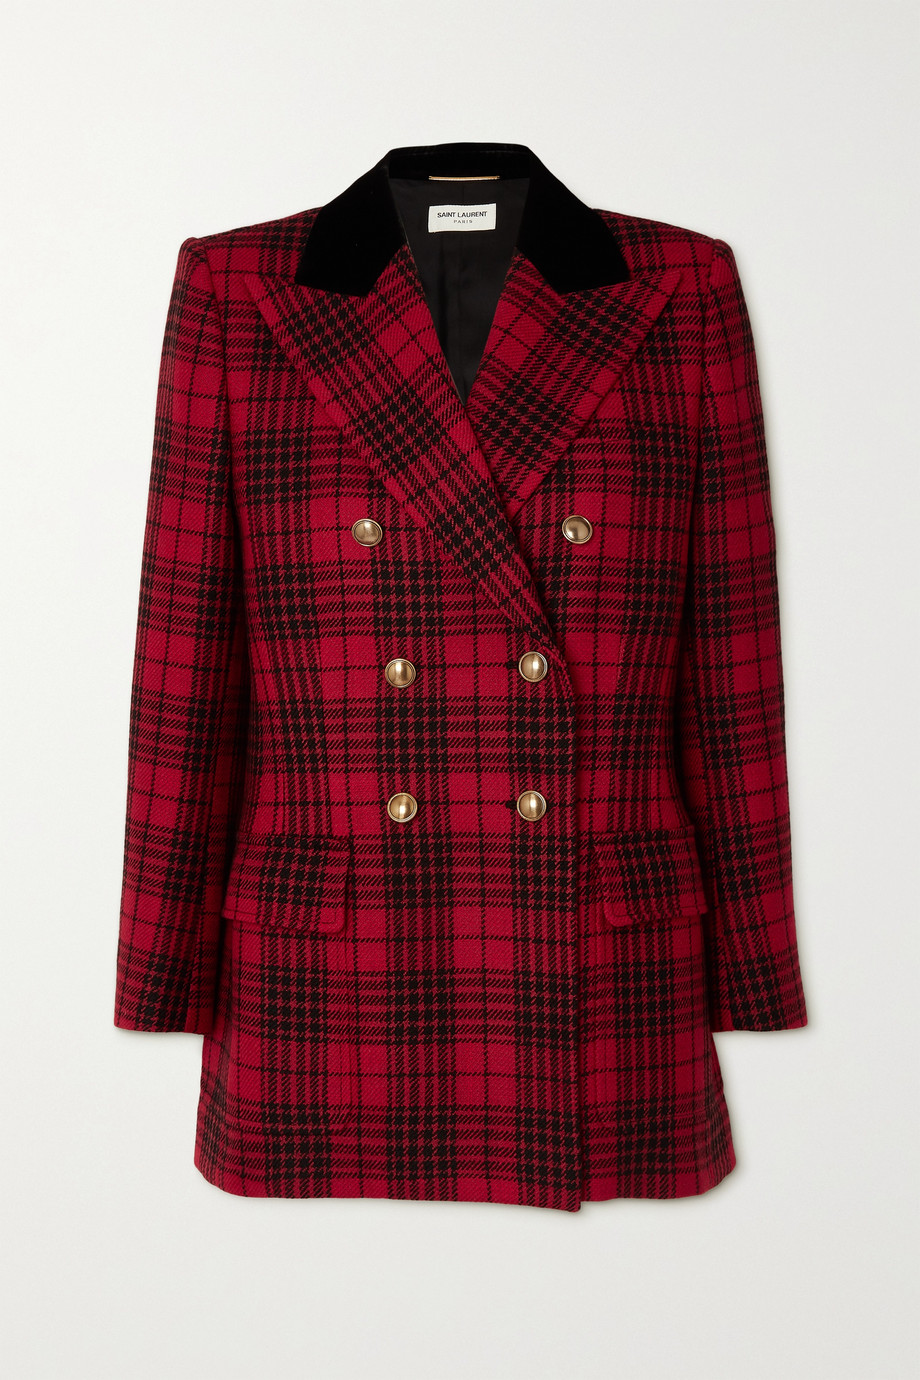 SAINT LAURENT Double-breasted velvet-trimmed checked wool blazer